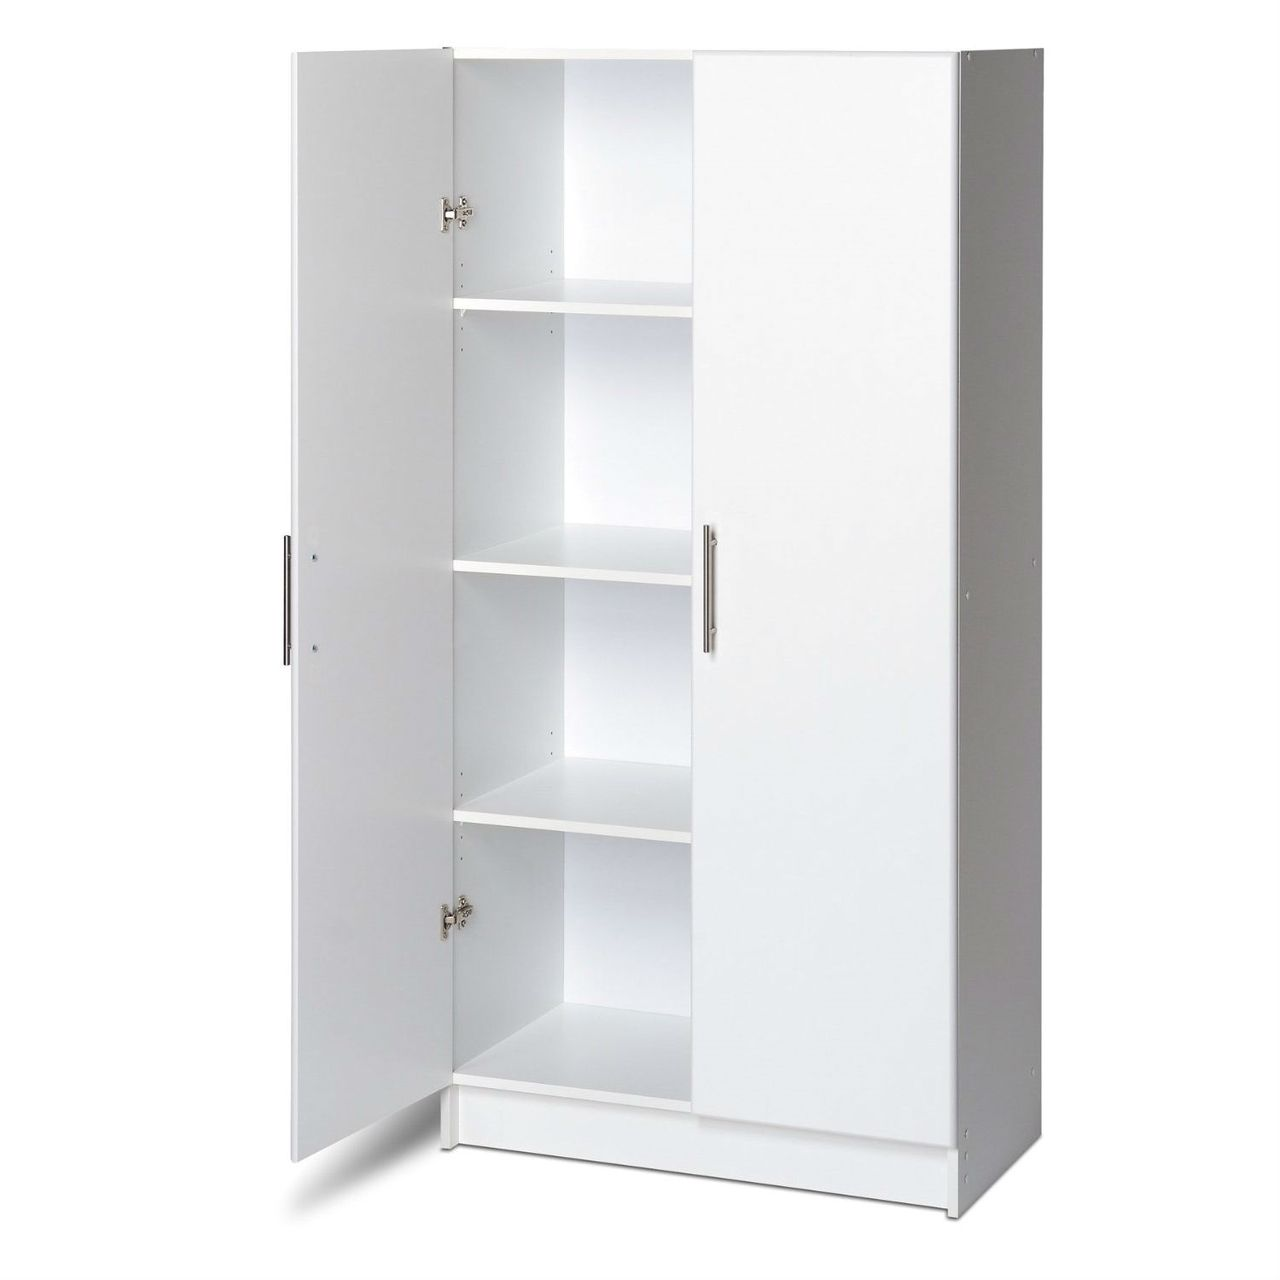 White Storage Cabinet Utility Garage Home Office Kitchen Bedroom White Storage Cabinets White Storage Wardrobe Storage Cabinet